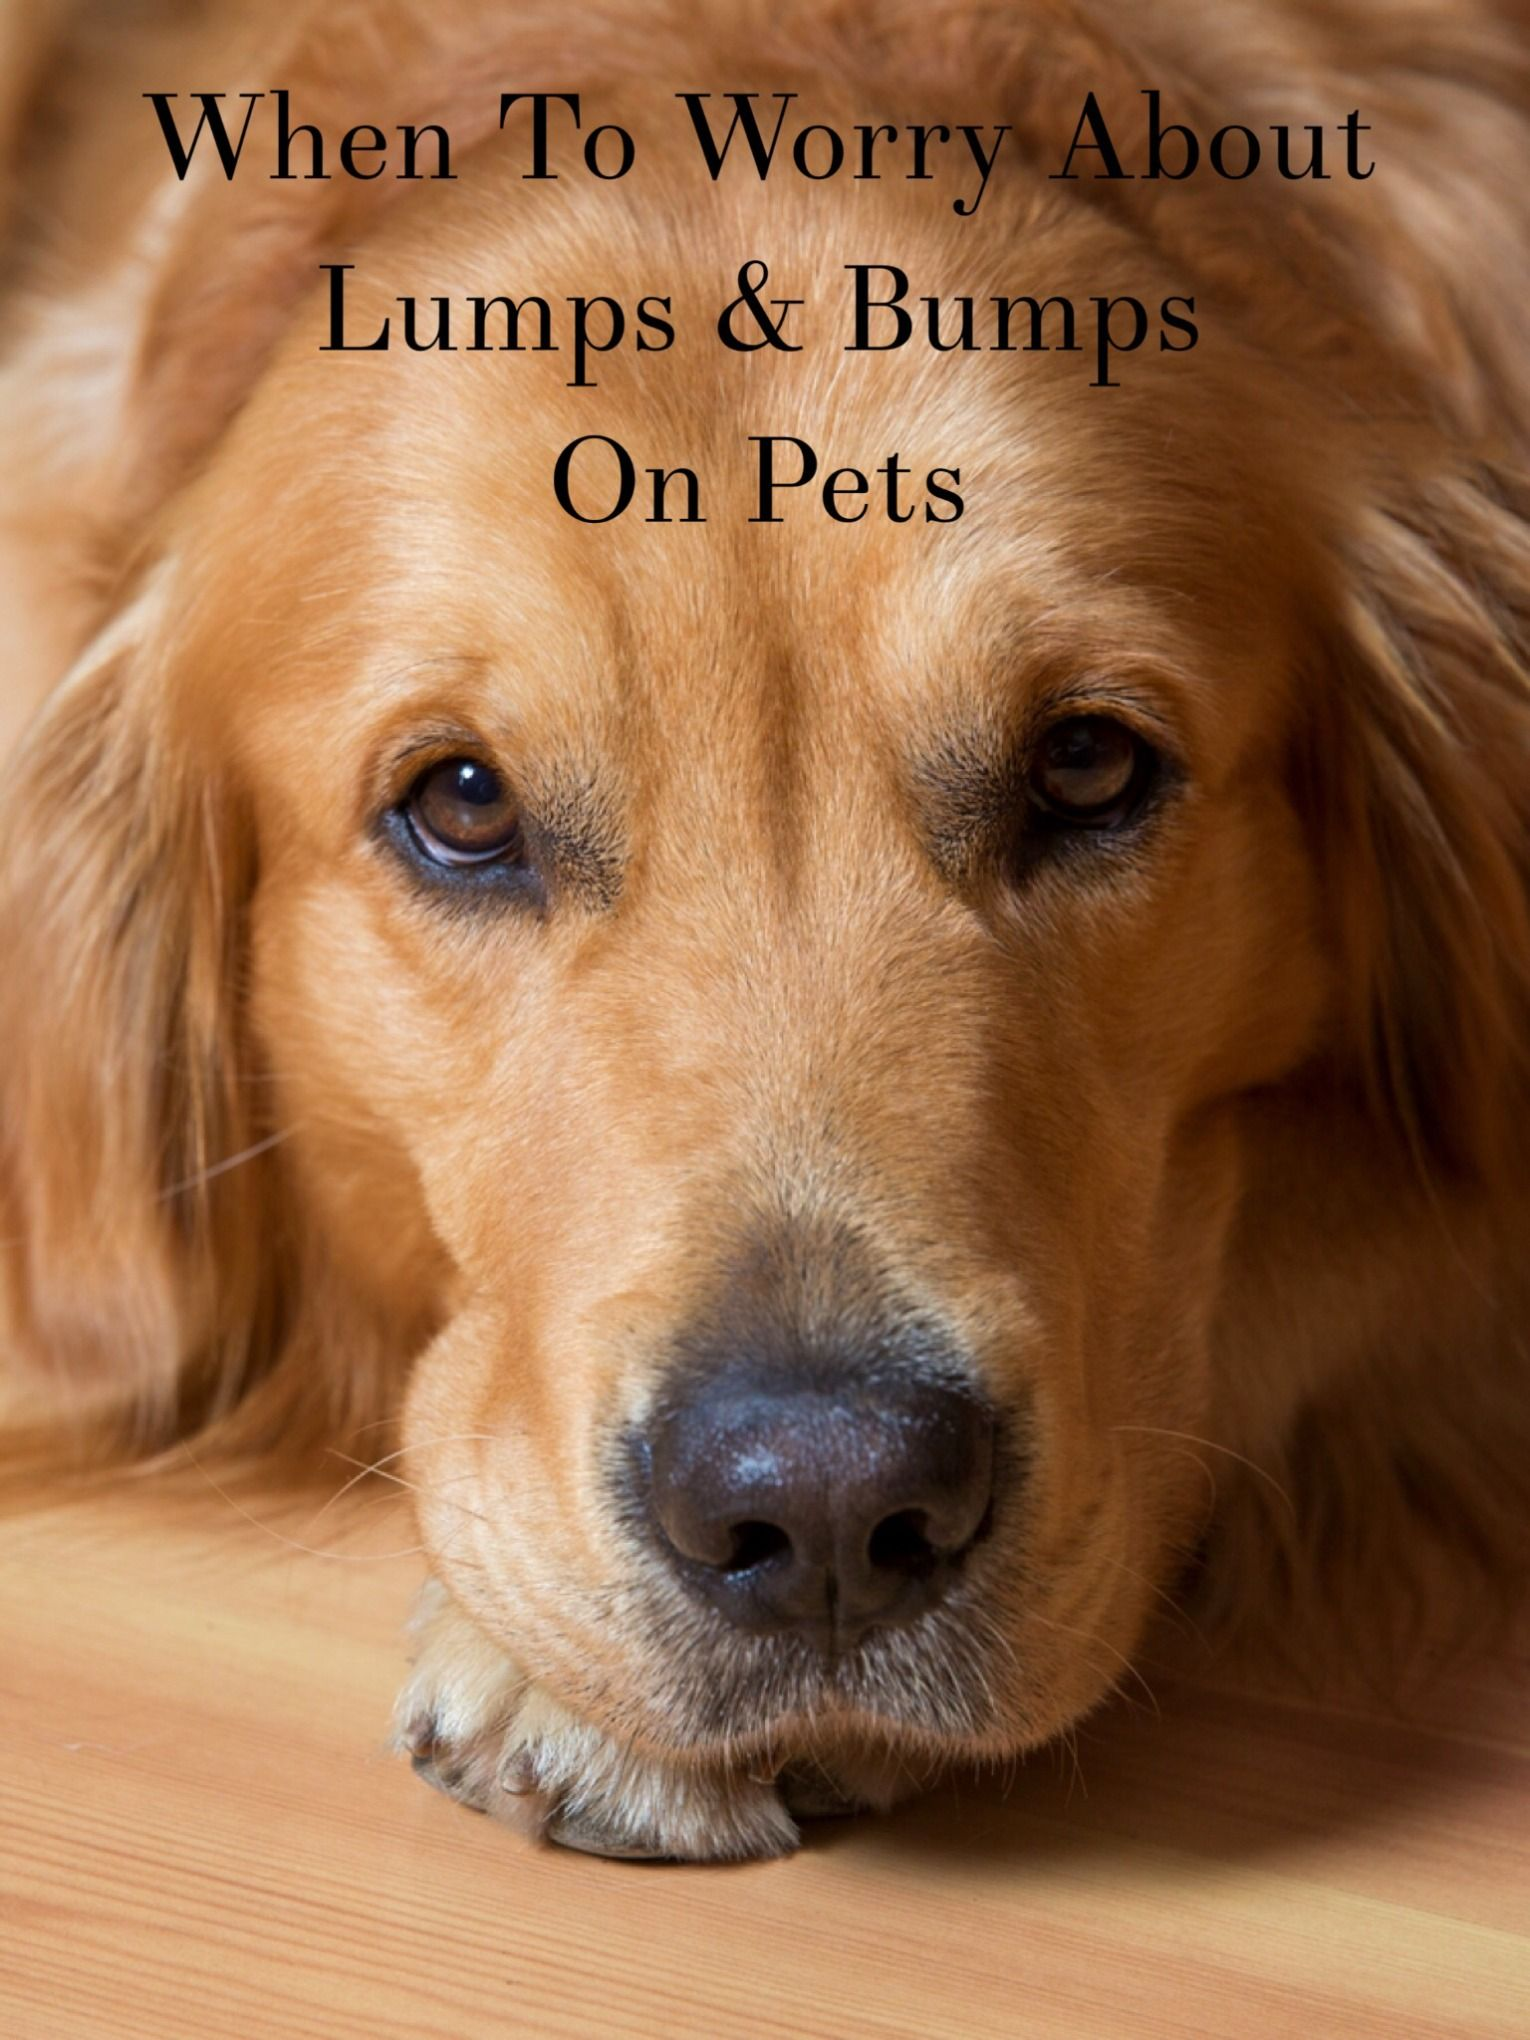 Have you found a lump on your pet and you aren't sure what